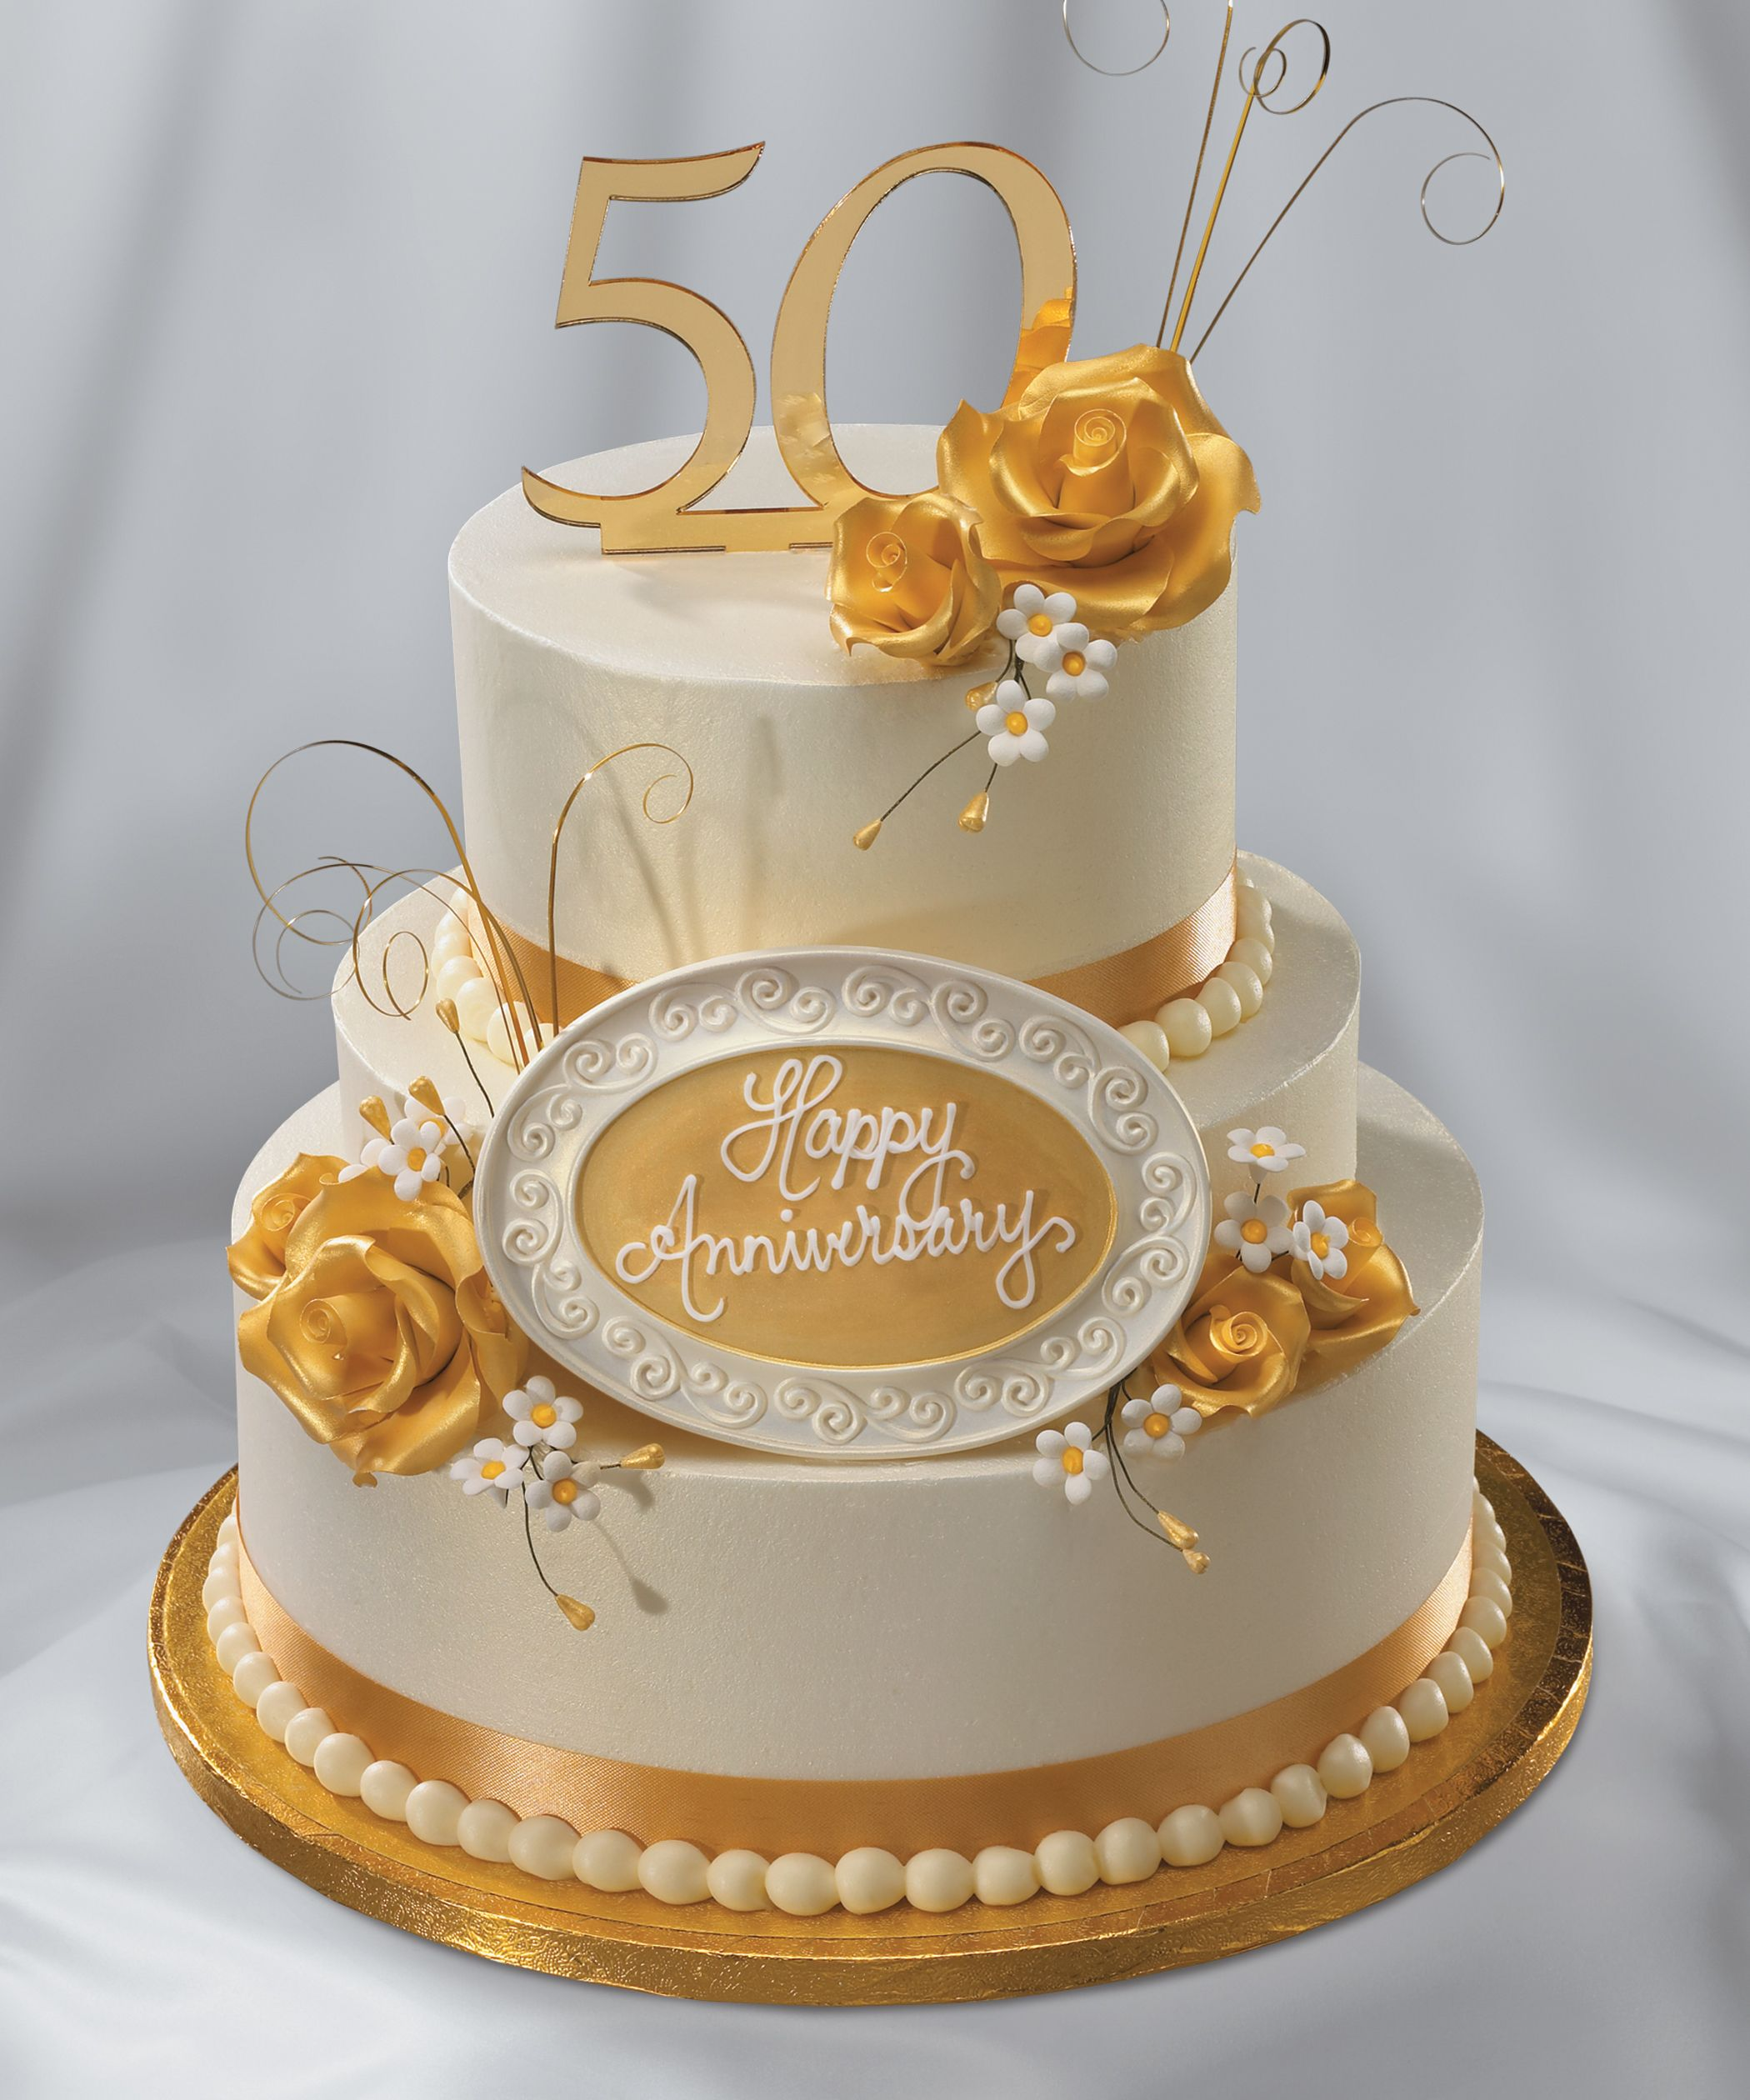 Golden Anniversary 50th Wedding Anniversary Cakes Golden Anniversary Cake Golden Wedding Anniversary Cake